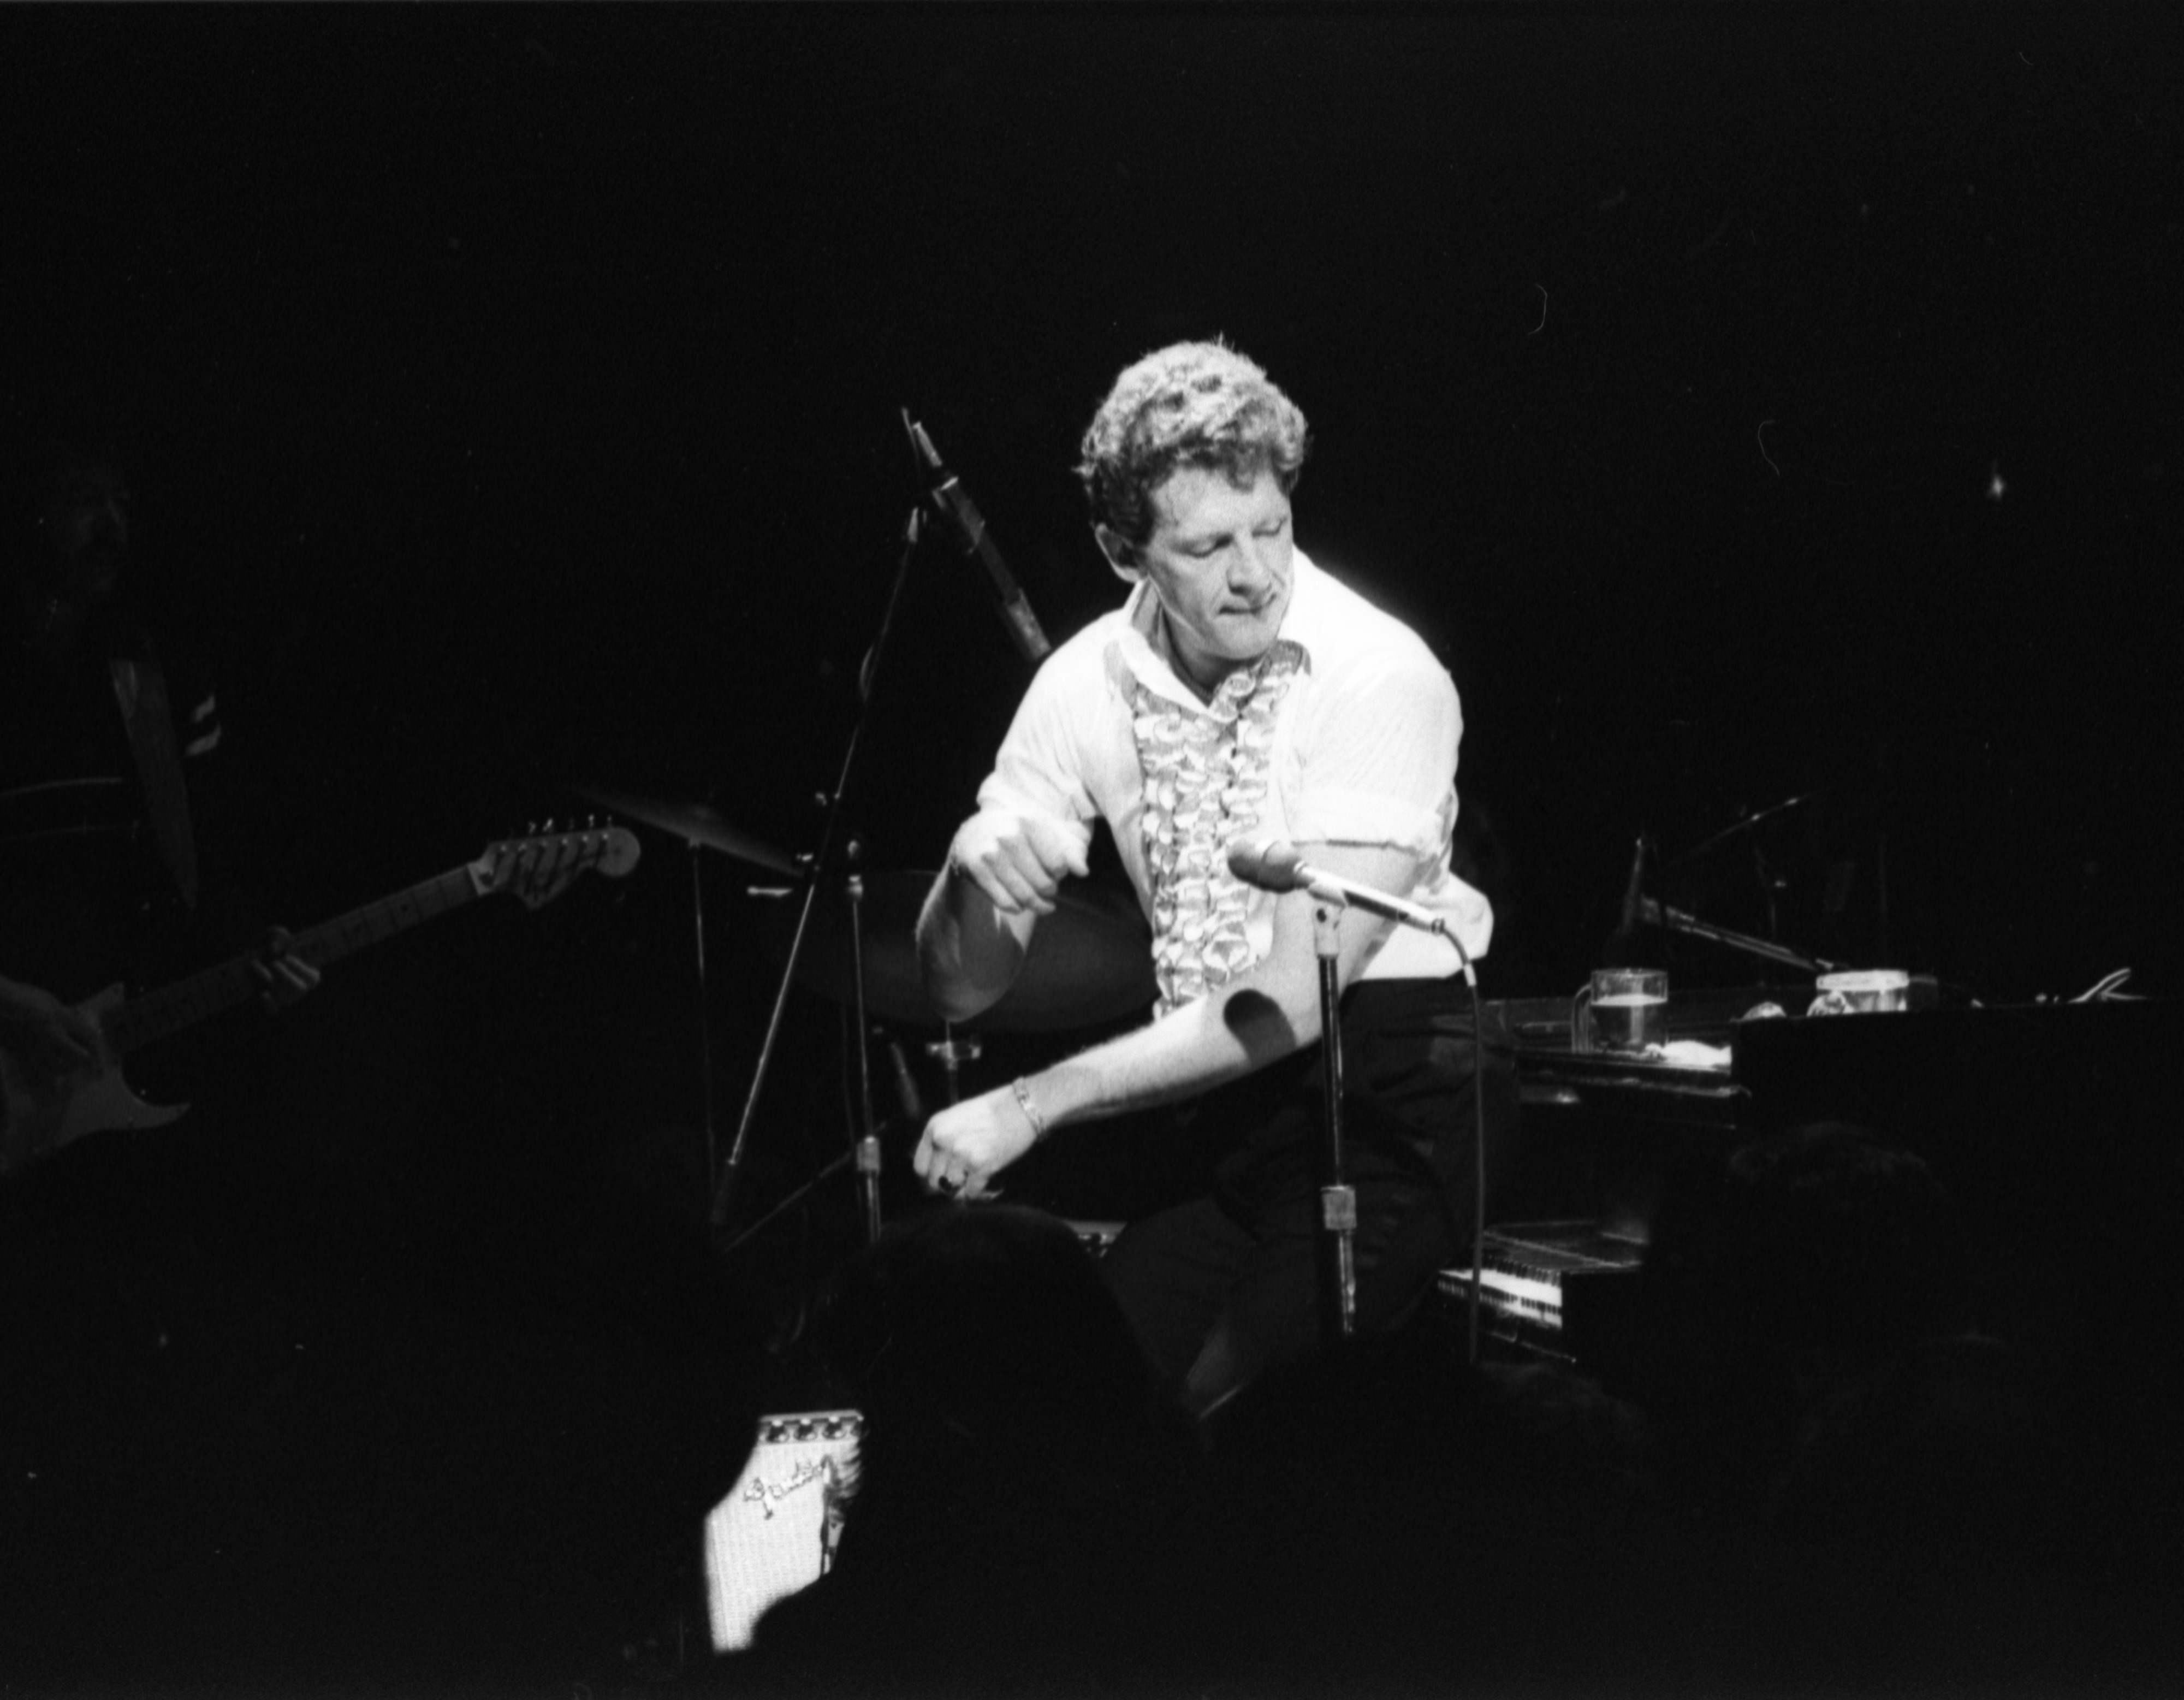 Jerry Lee Lewis Puts His Butt On Piano During Performance At The Second Chance Club, February 3, 1981 image